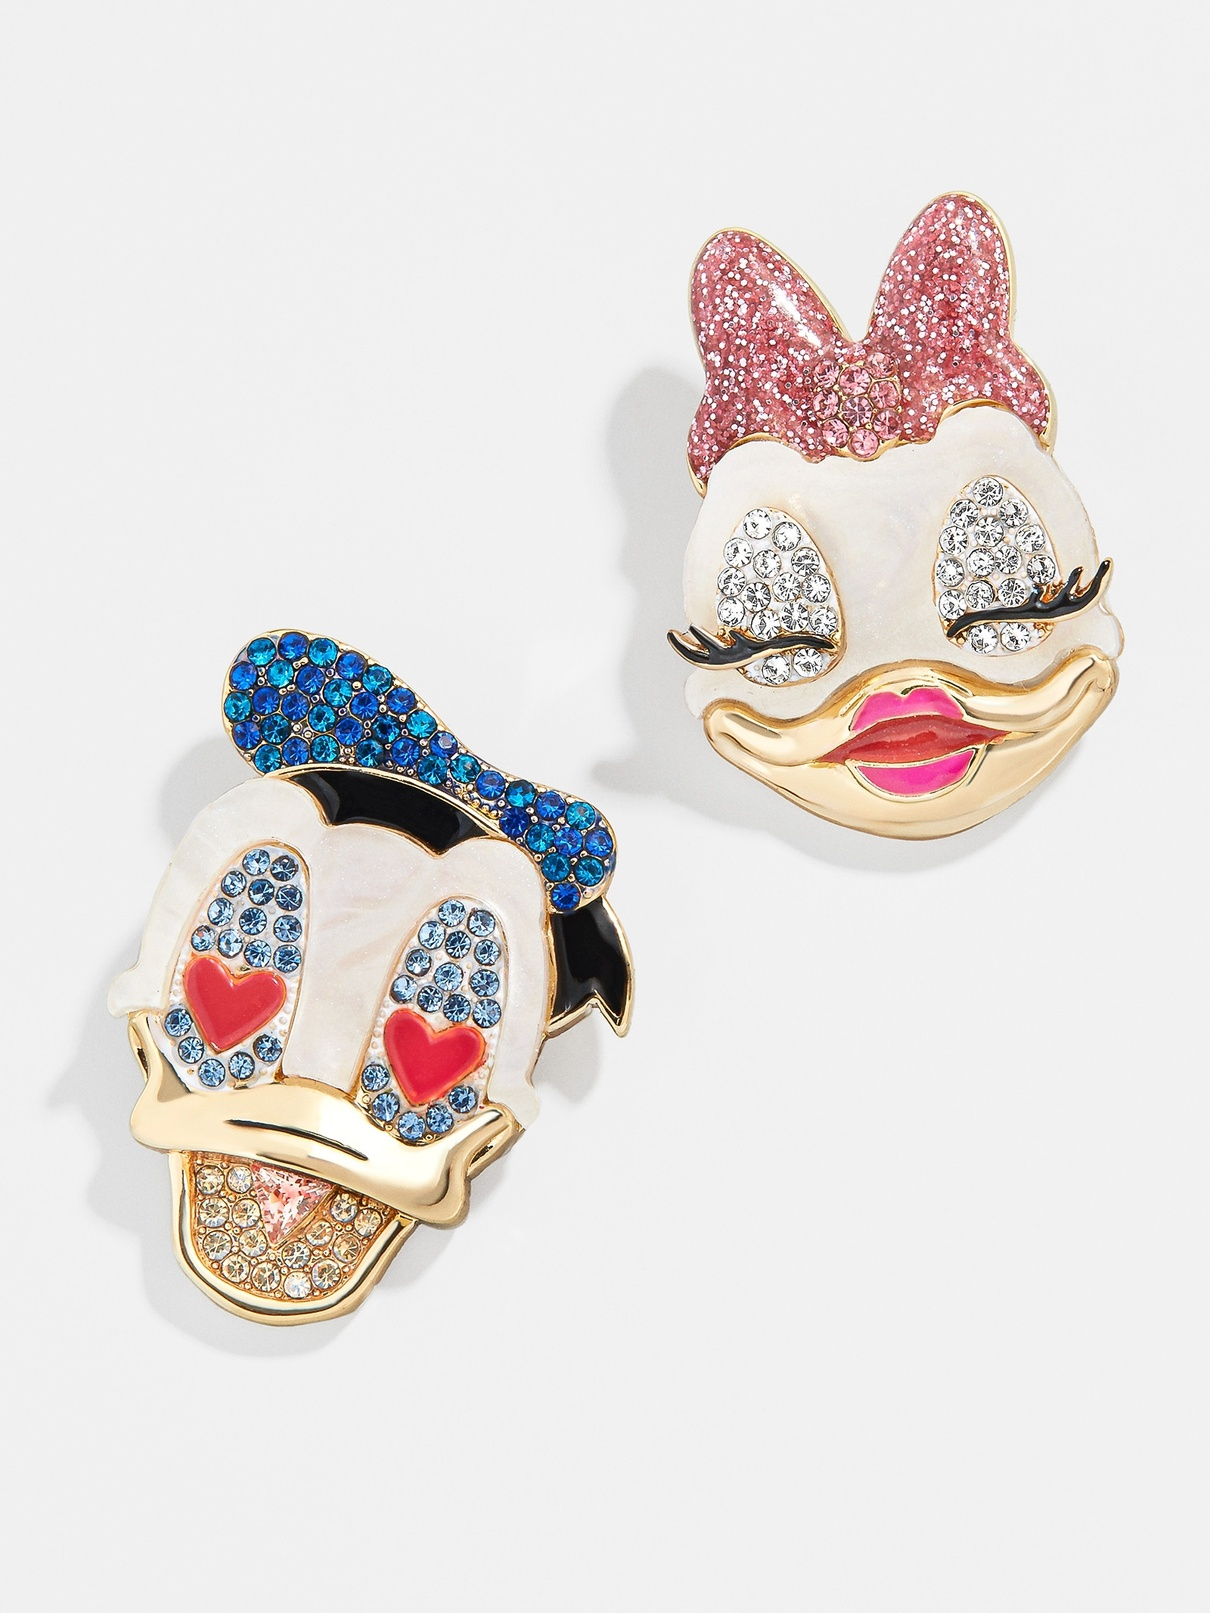 Baublebar x Disney Amore Earrings